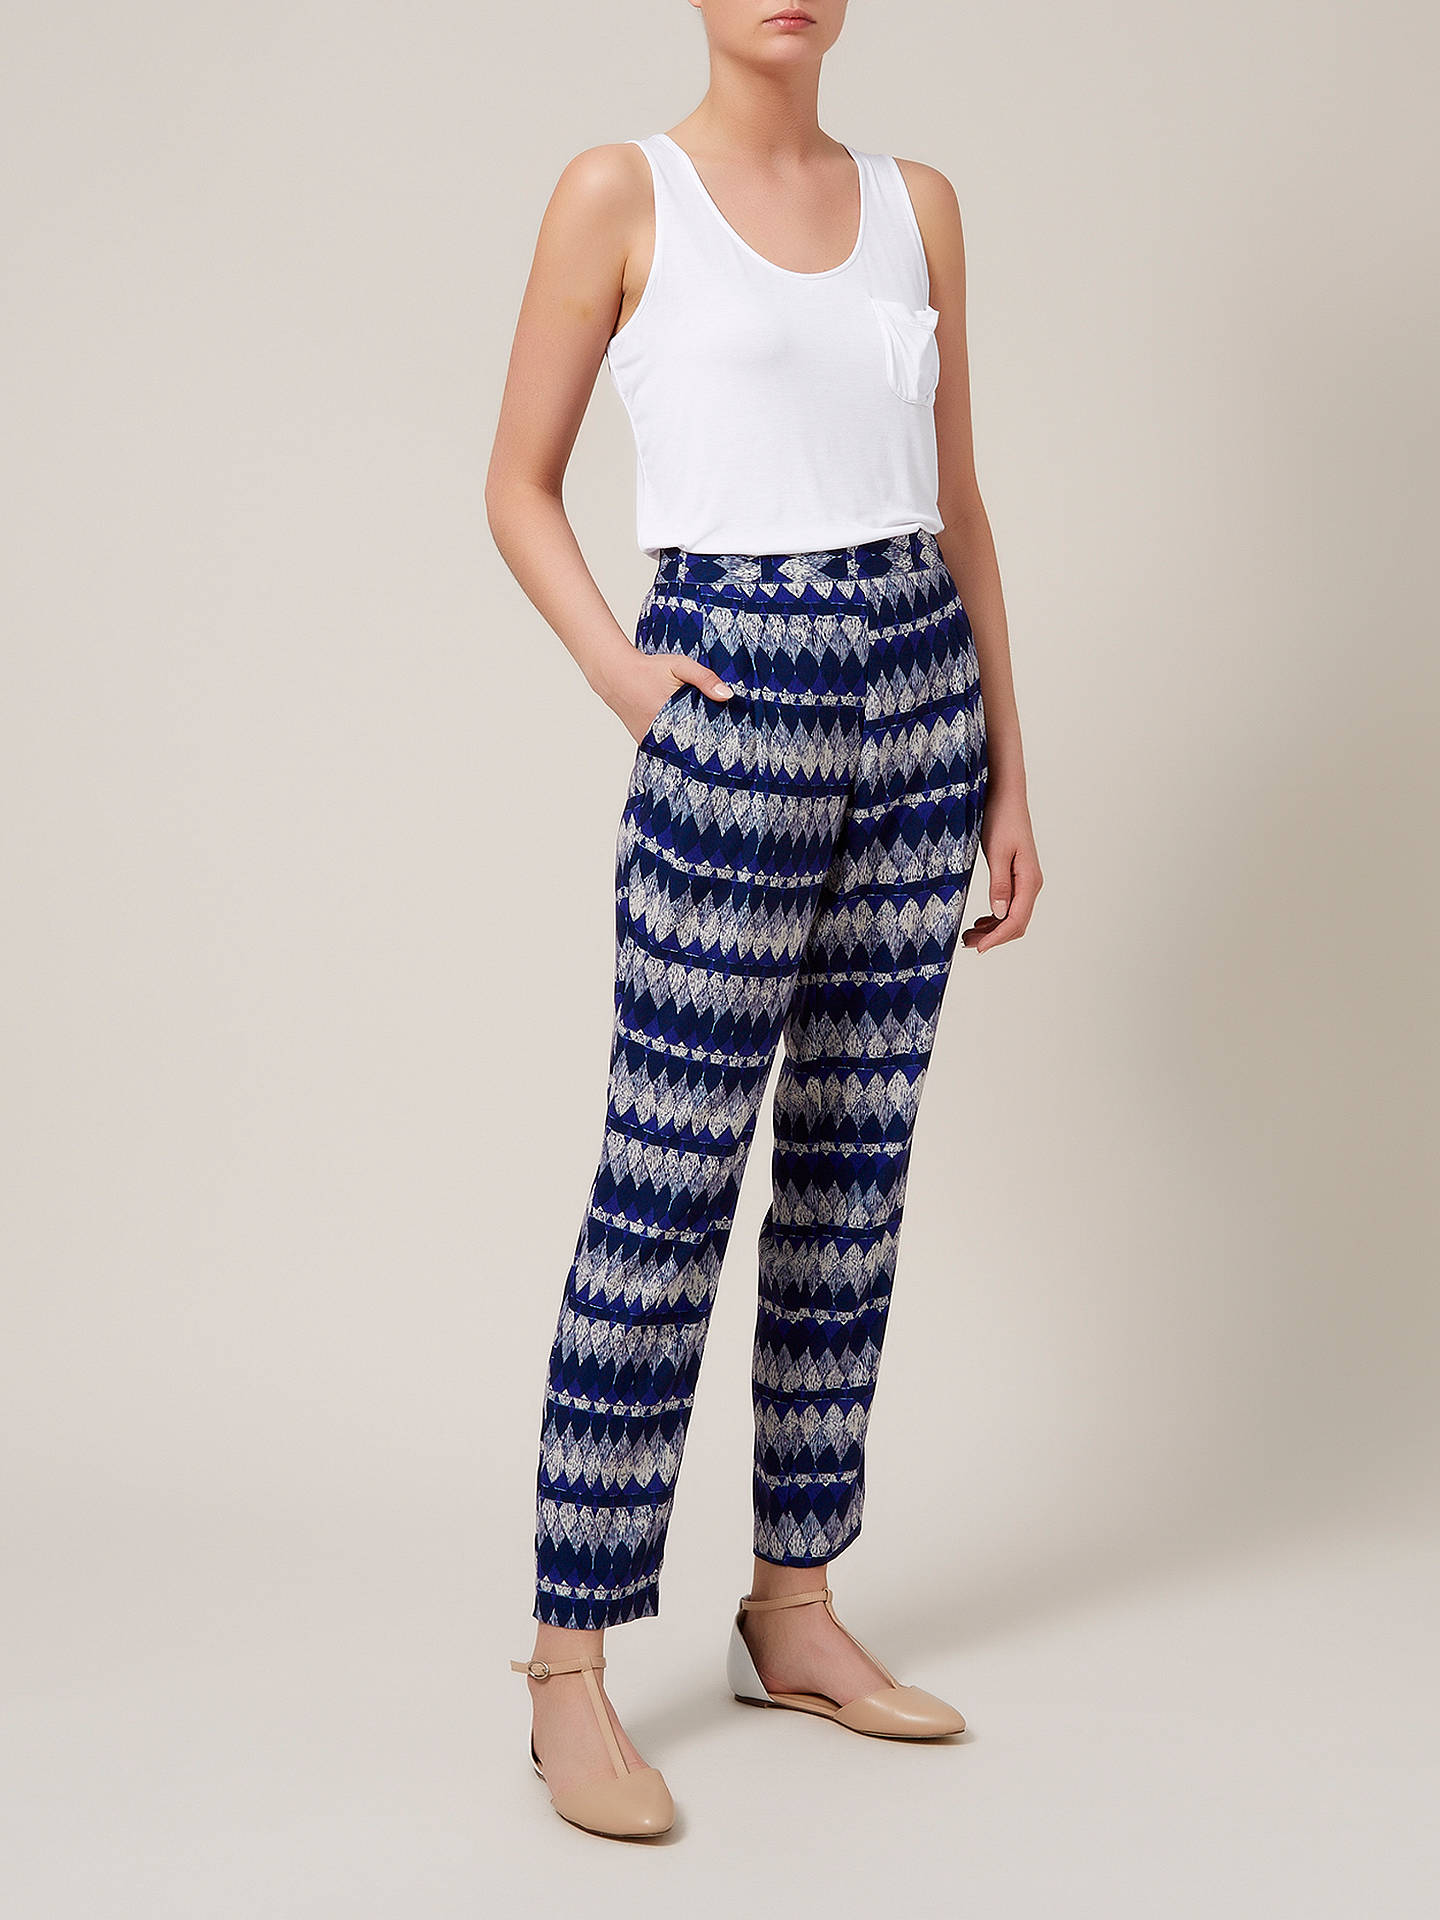 BuyKaliko Diamond Print Slouchy Trousers, Multi Navy, 10 Online at johnlewis.com